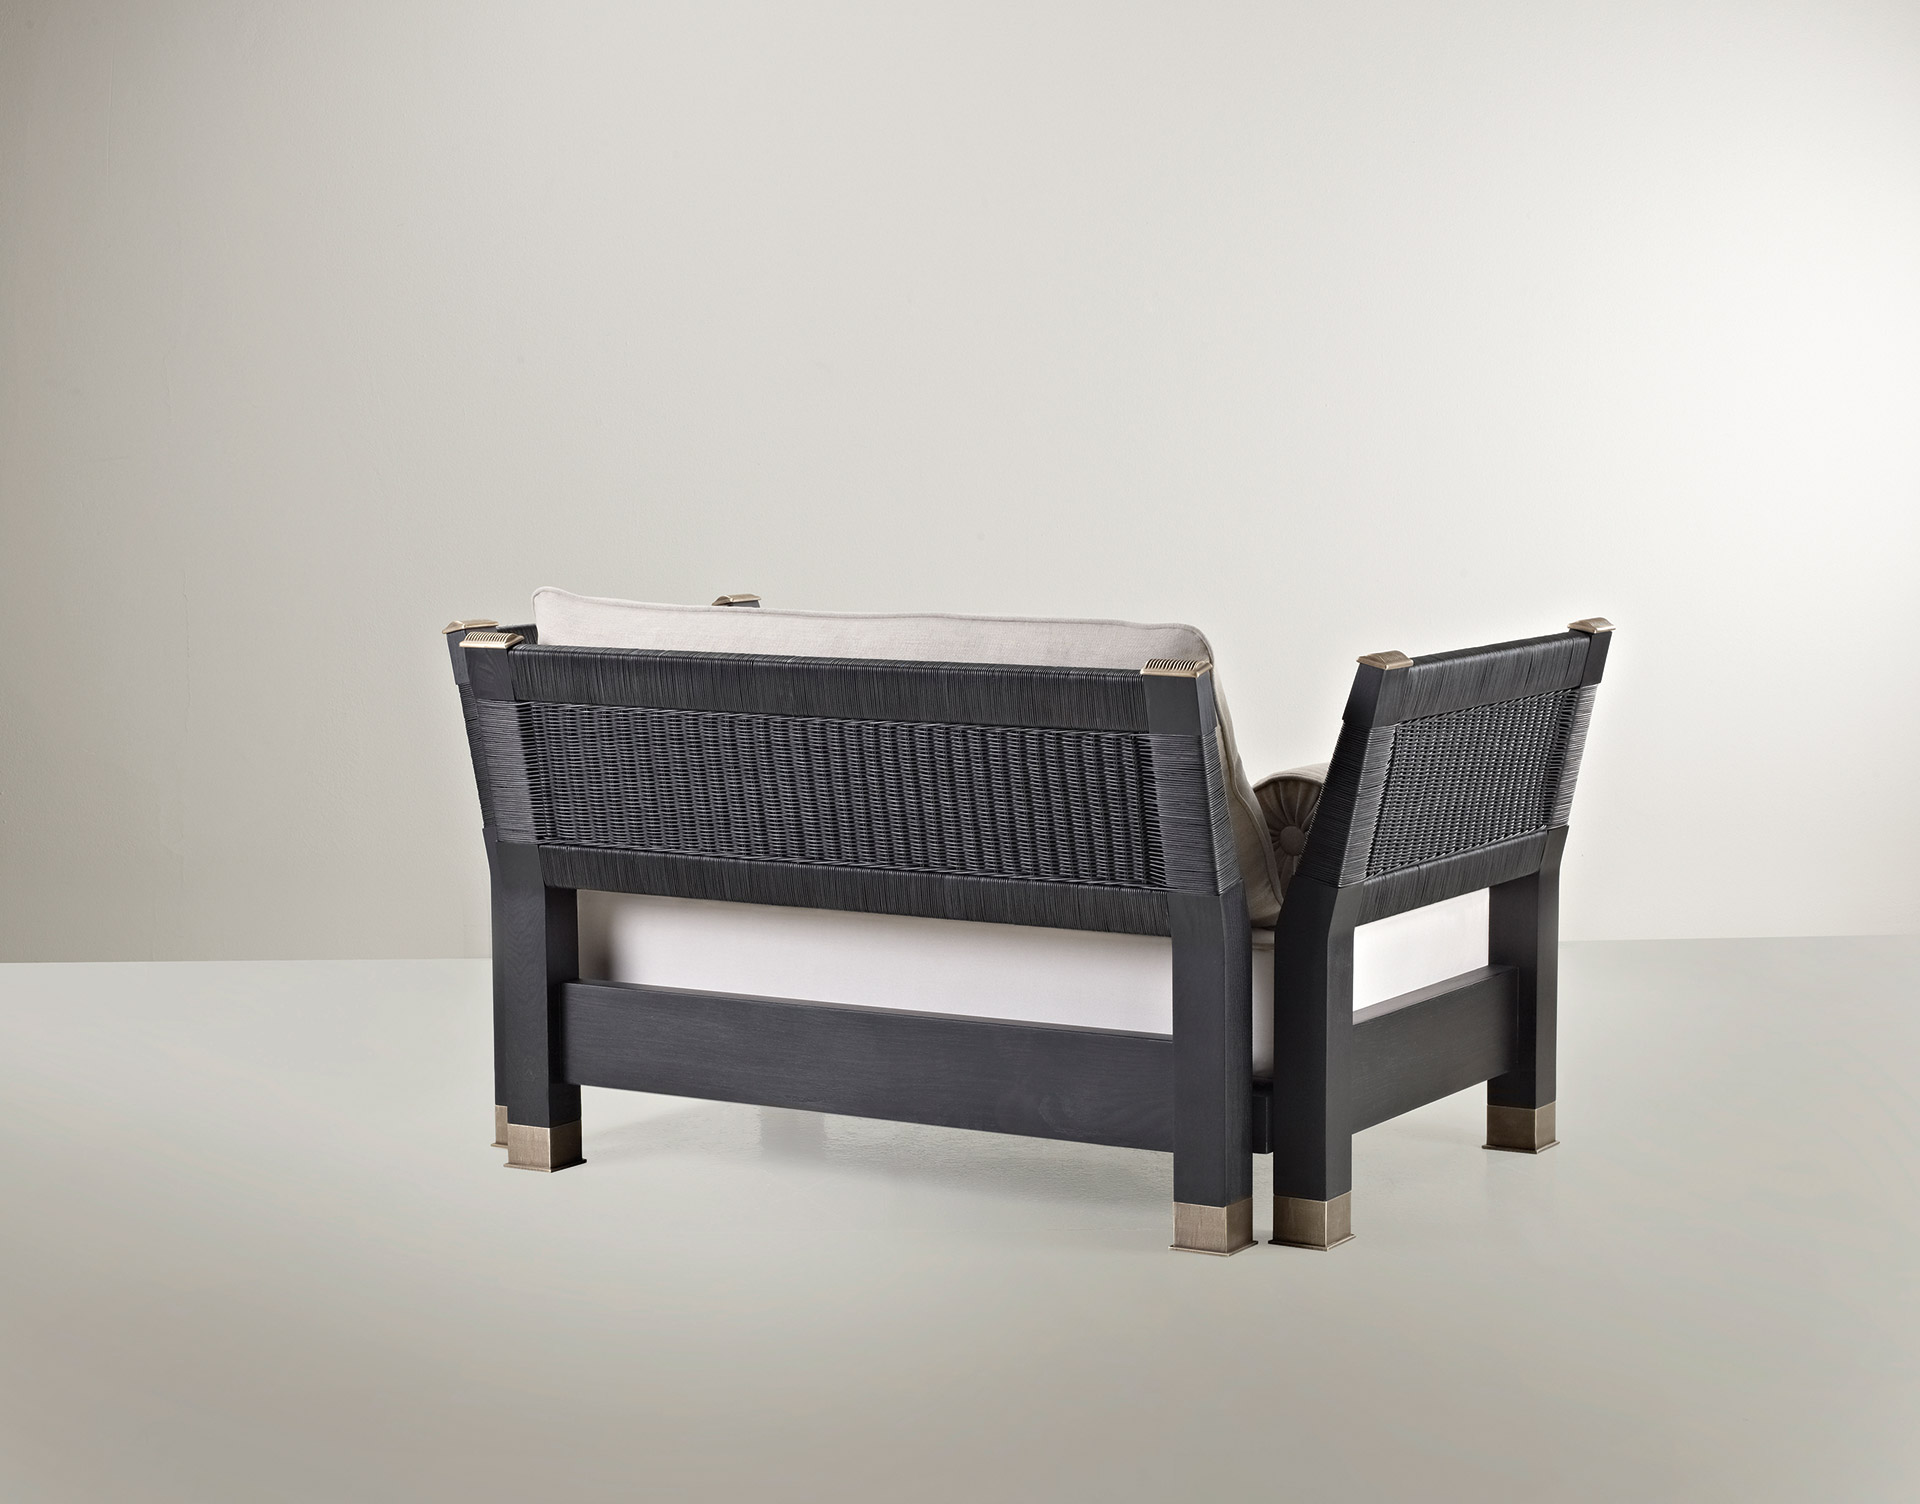 Moltrasio is an outdoor wooden sofa with bronze feet and details, from Promemoria's outdoor catalogue | Promemoria